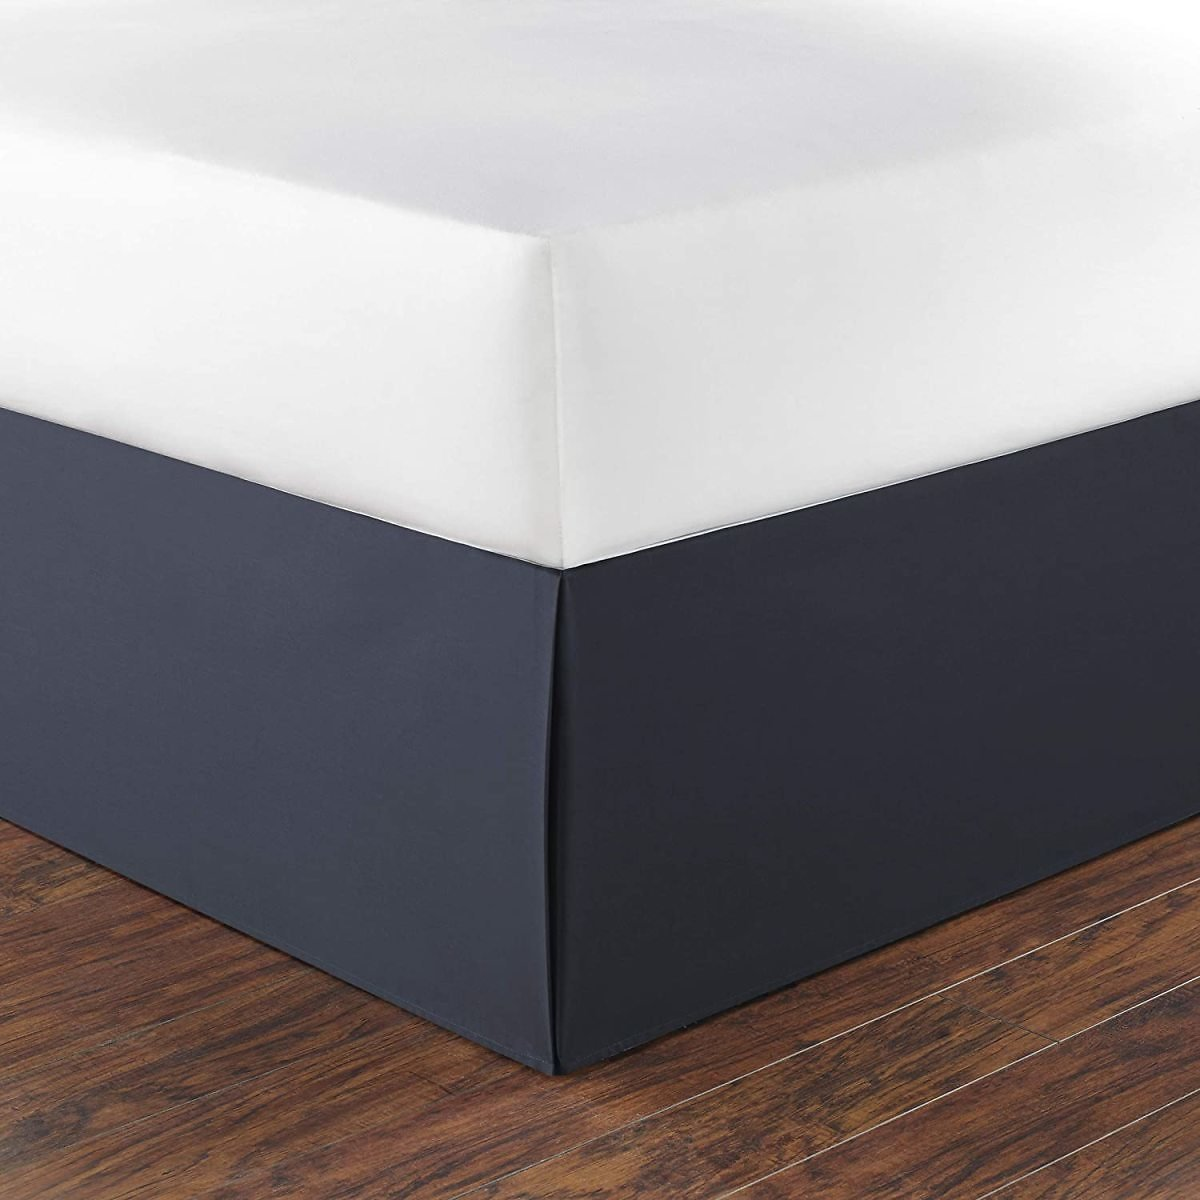 Nautica Home Collection 100% Cotton 15-Inch Drop Bedskirt Dust Ruffle, Split Corners for Easy Fit, Queen, Navy